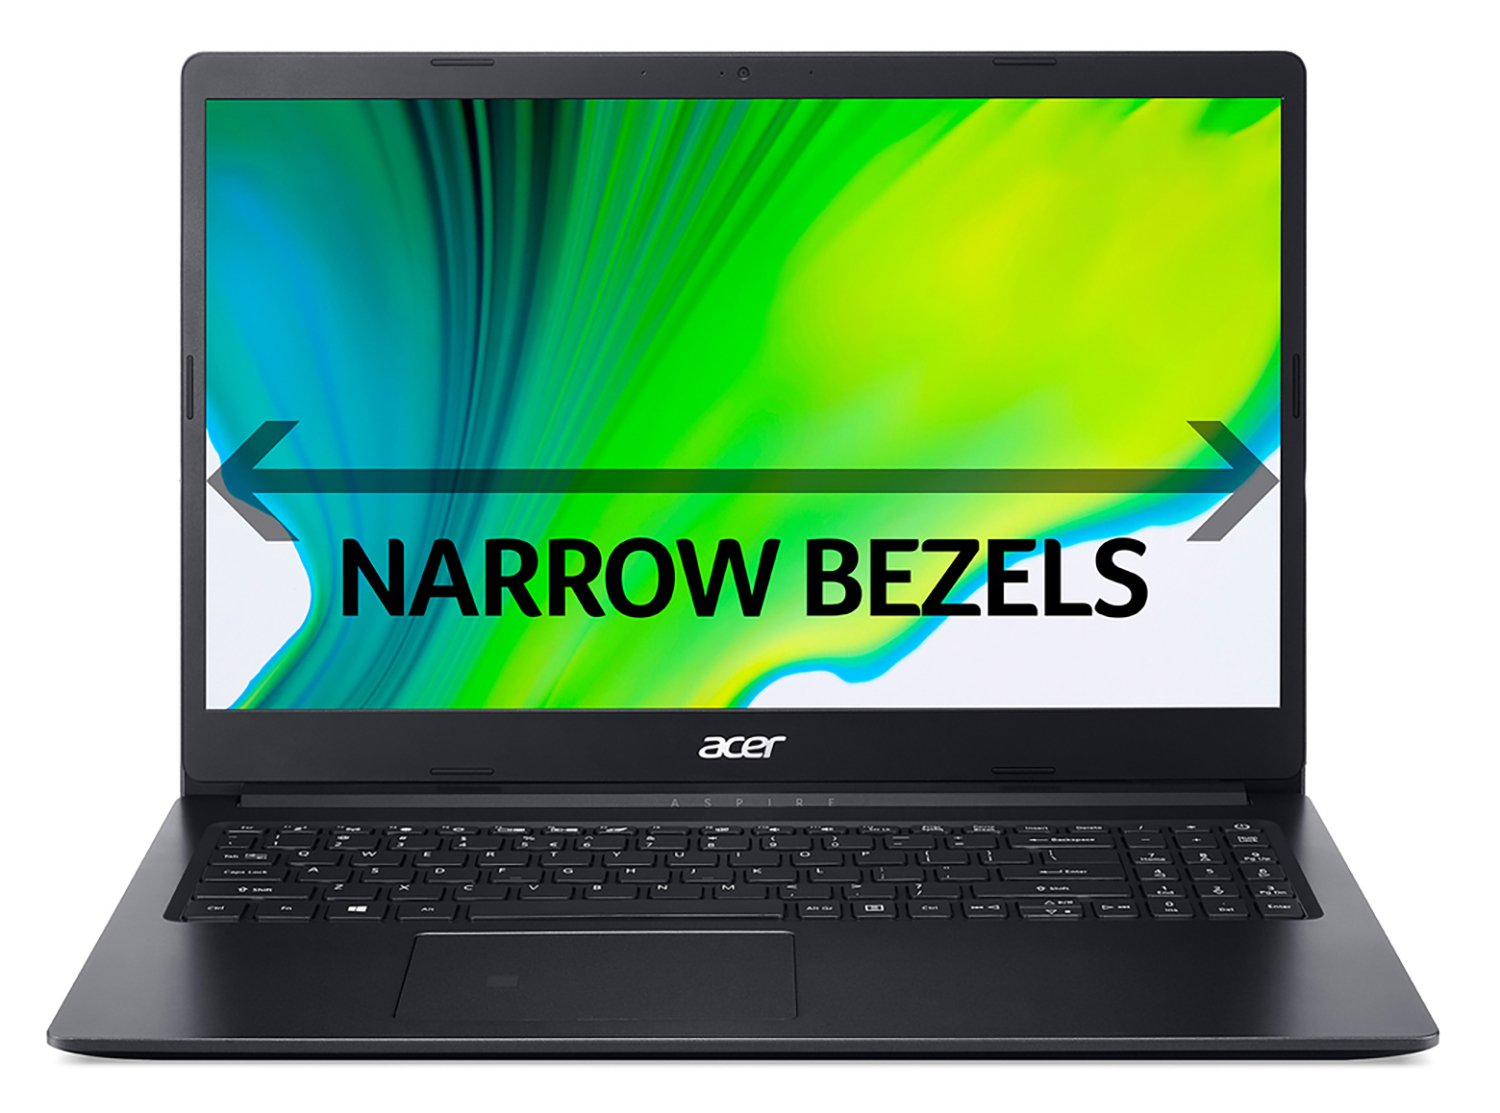 Acer Aspire 3 15.6 Inch A9 8GB 1TB HD Laptop - Black